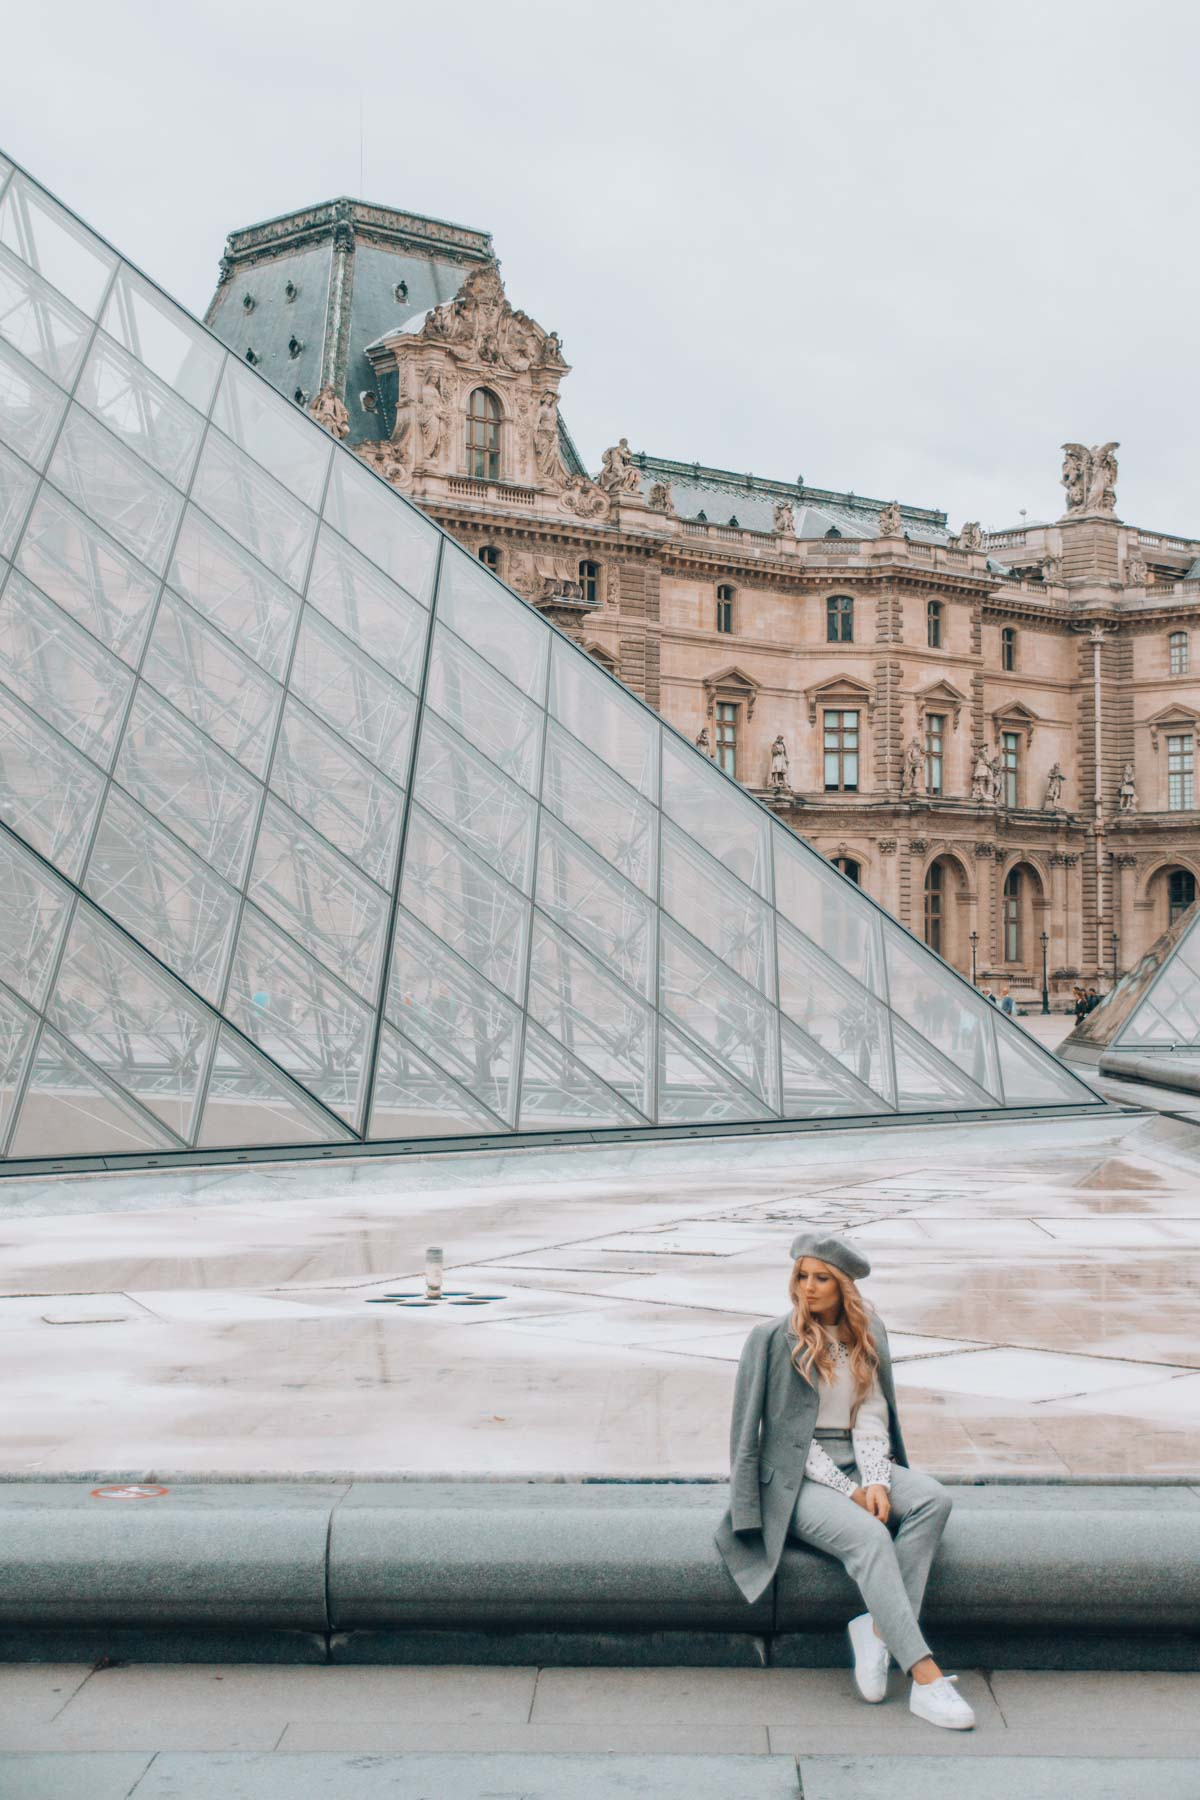 Louvre Paris travel guide